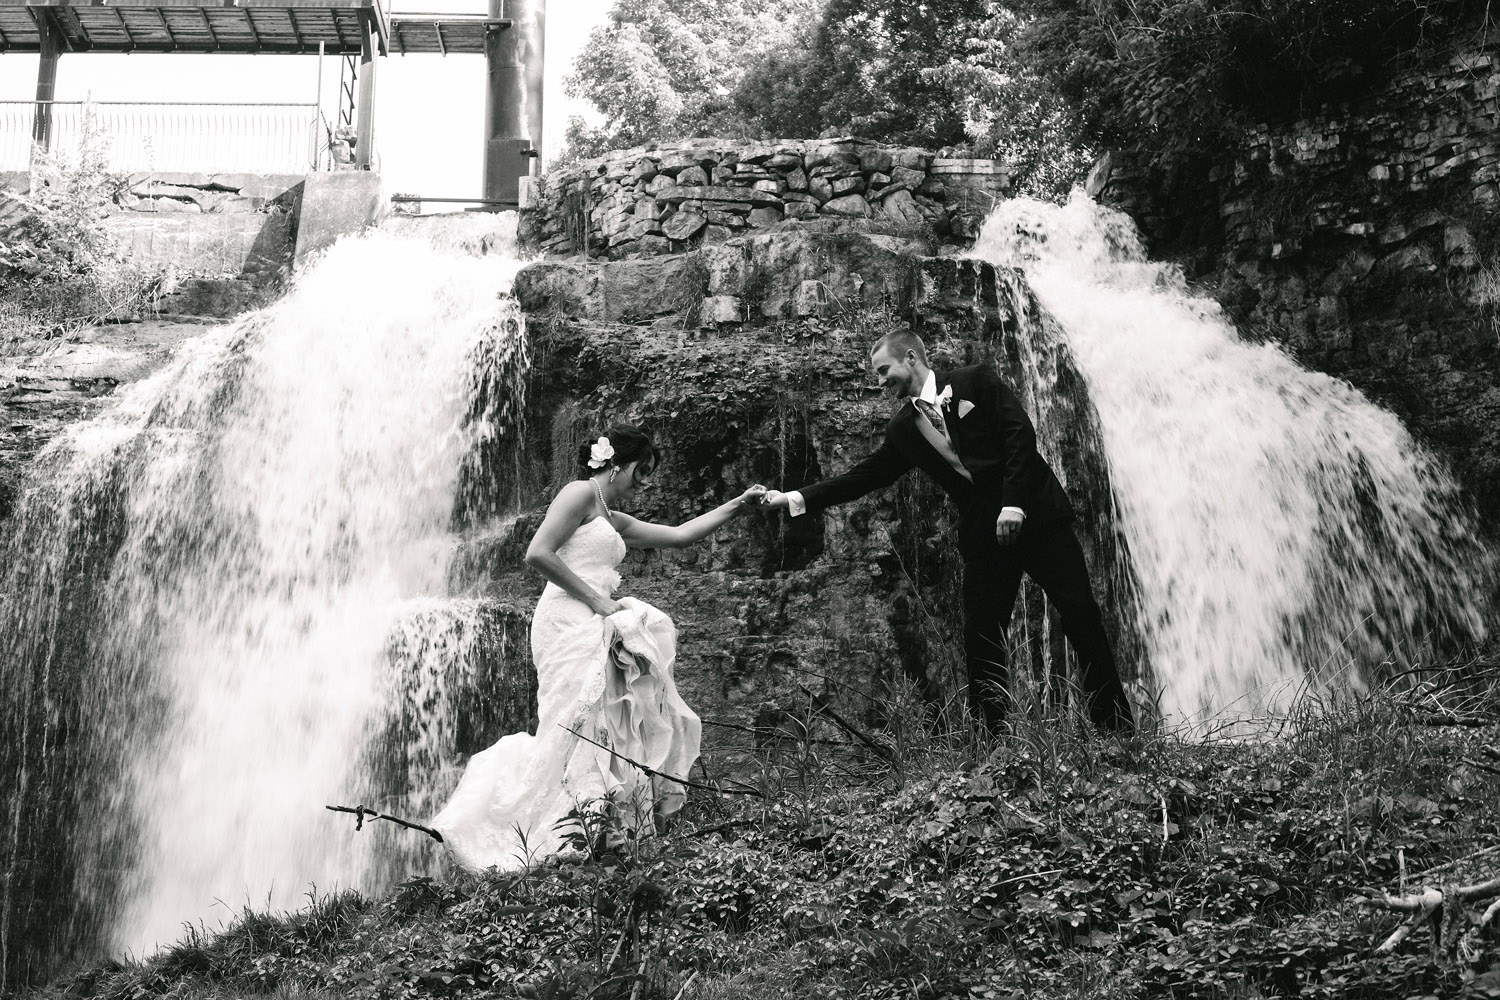 Groom helps Bride along at waterfalls